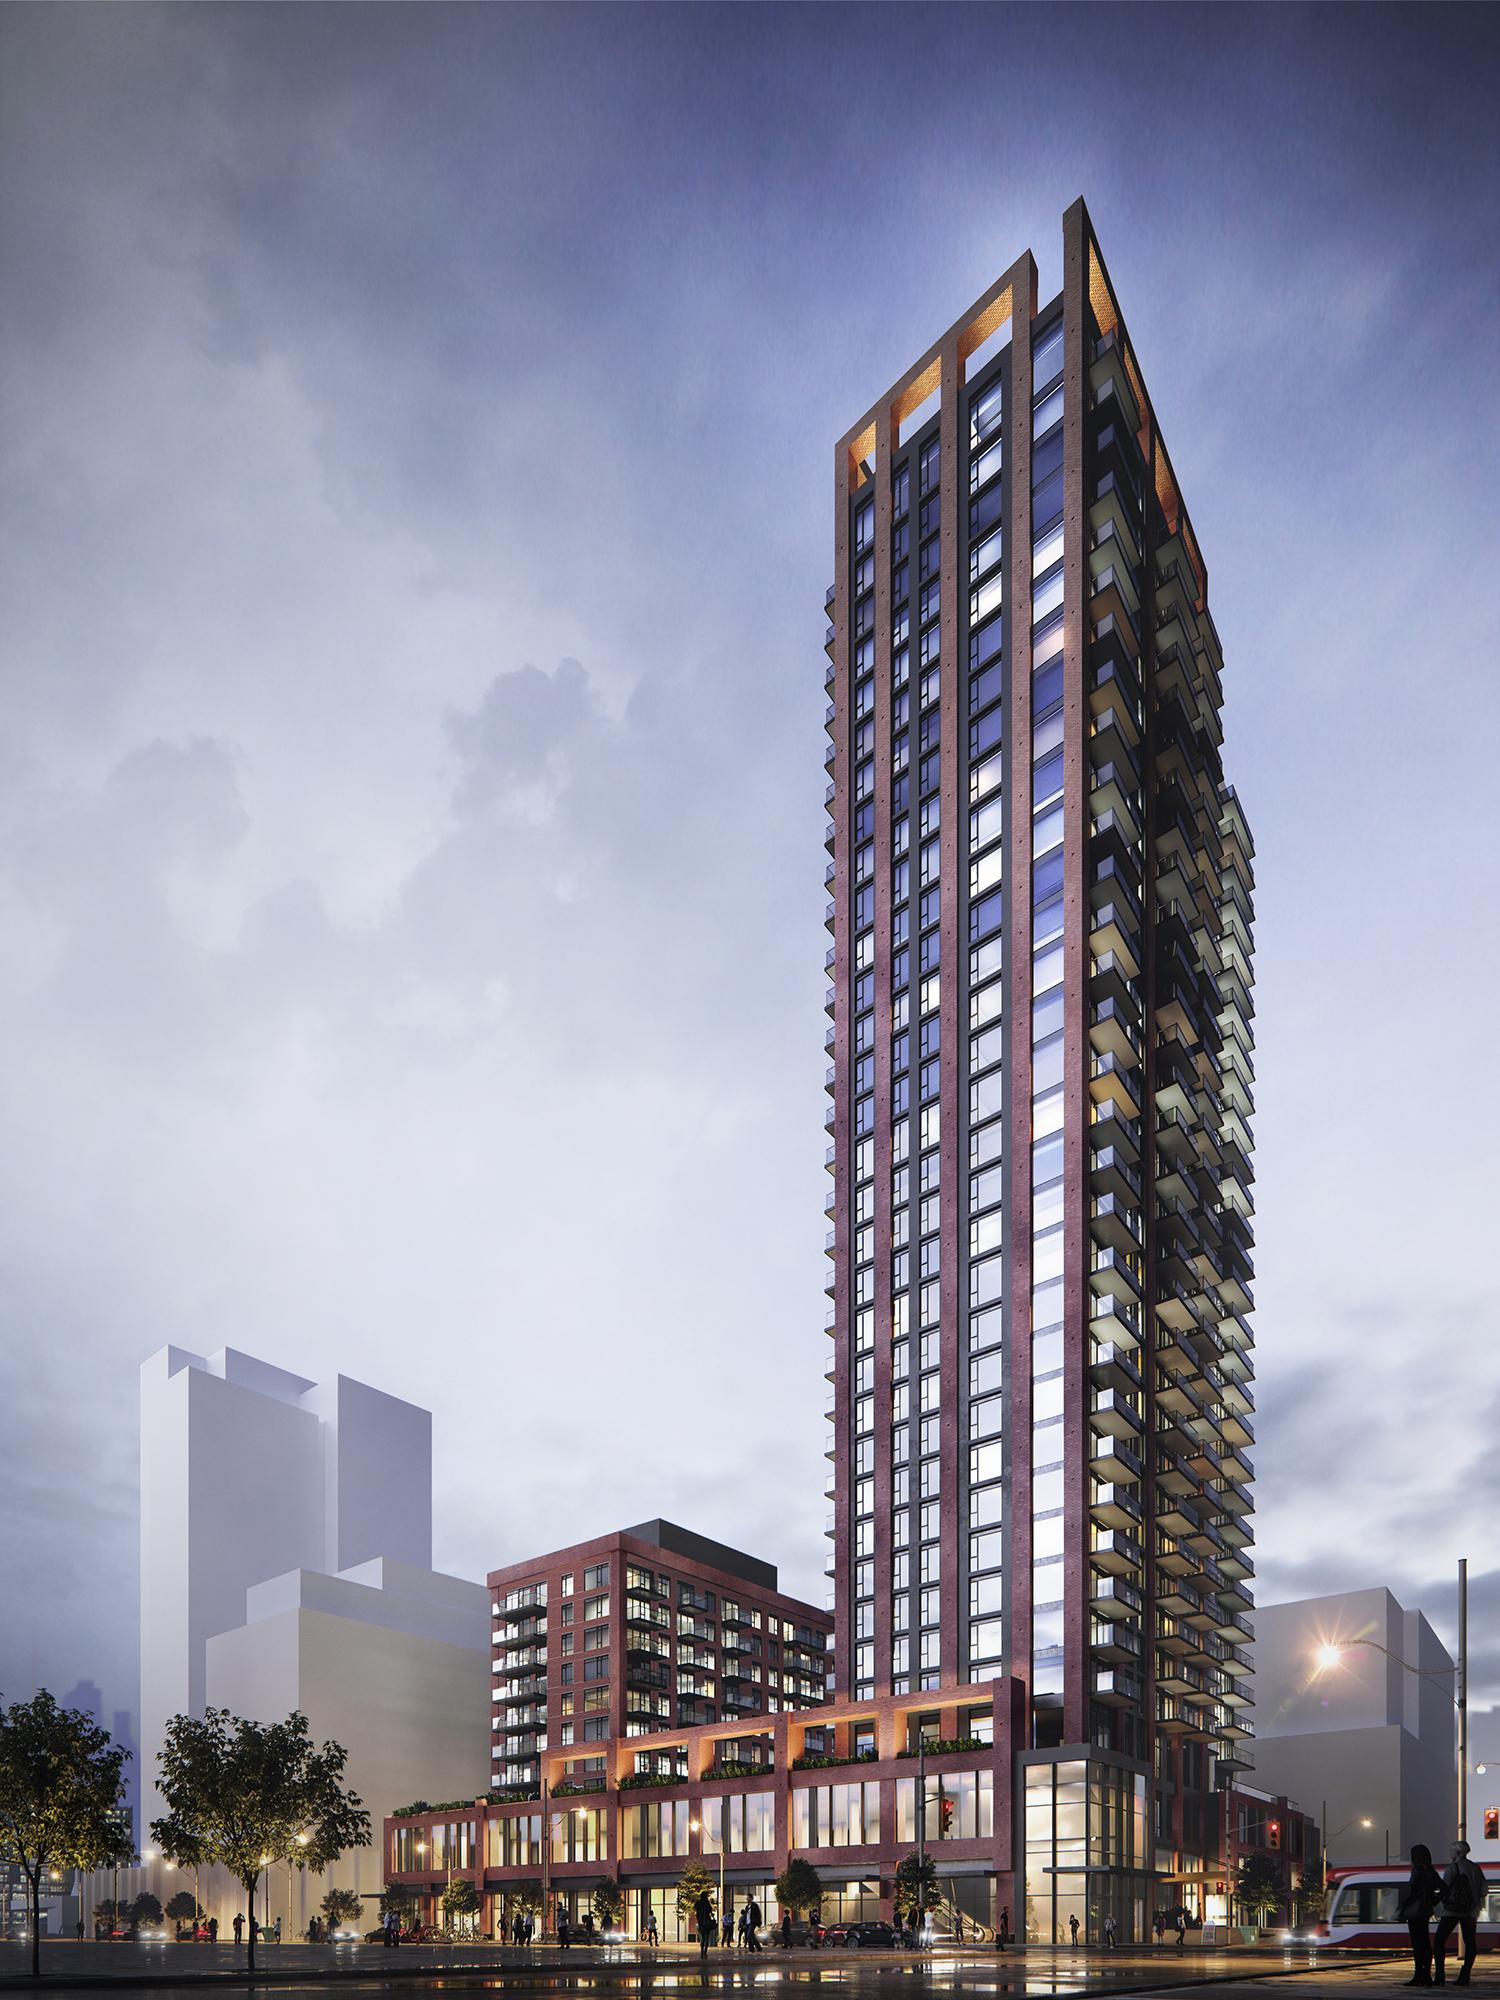 rendering of a condominium with two towers atop a common podium, one short one tall, clad in red brick with protruding balconies